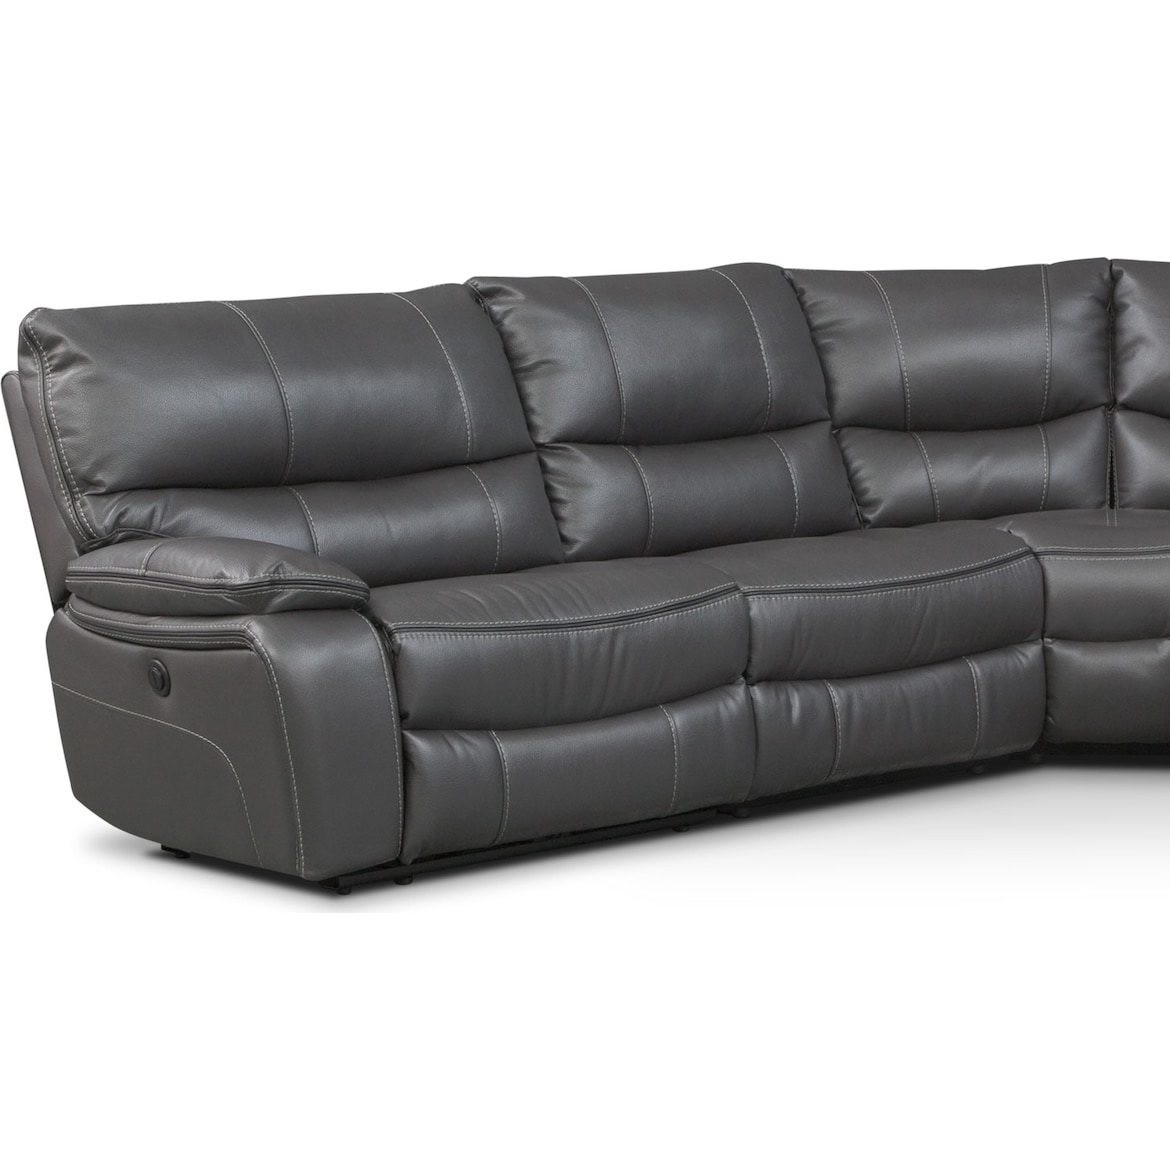 Orlando 5-Piece Power Reclining Sectional with 3 Reclining Seats